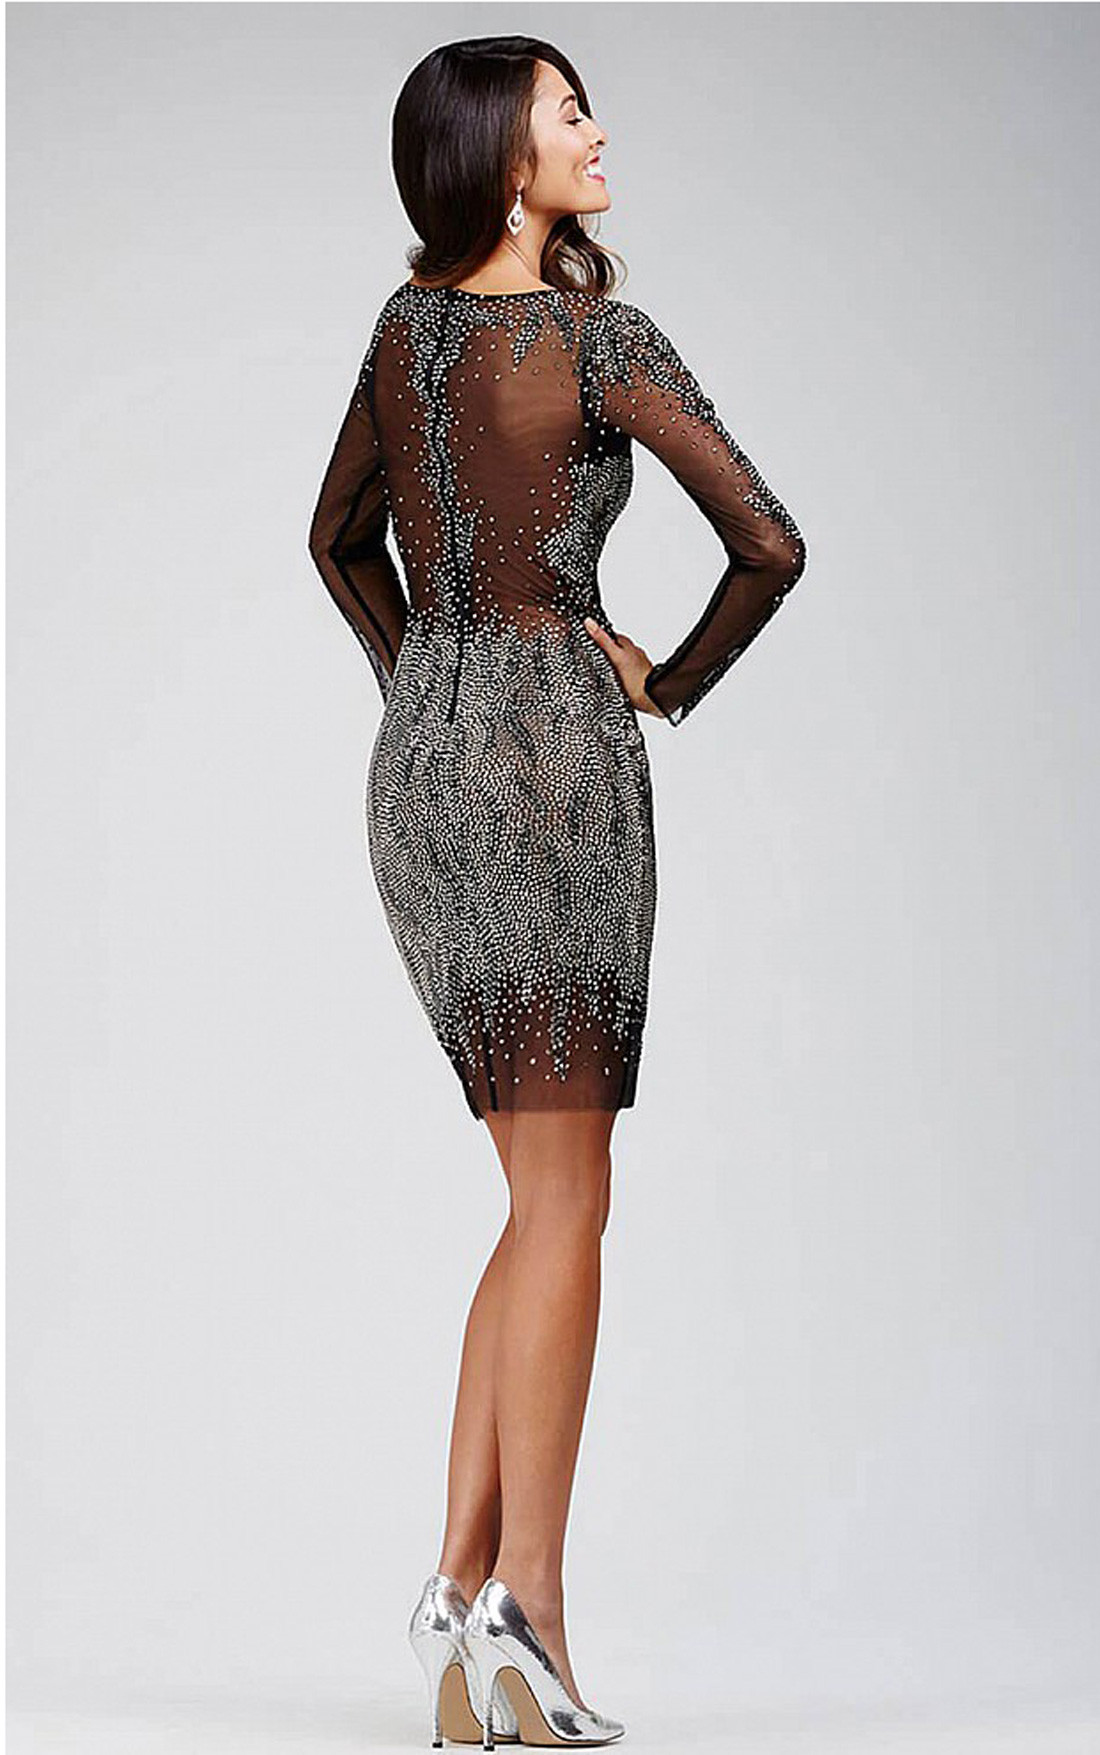 Jovani - Black Sheer Dress with Crystal Embellishments (28610)